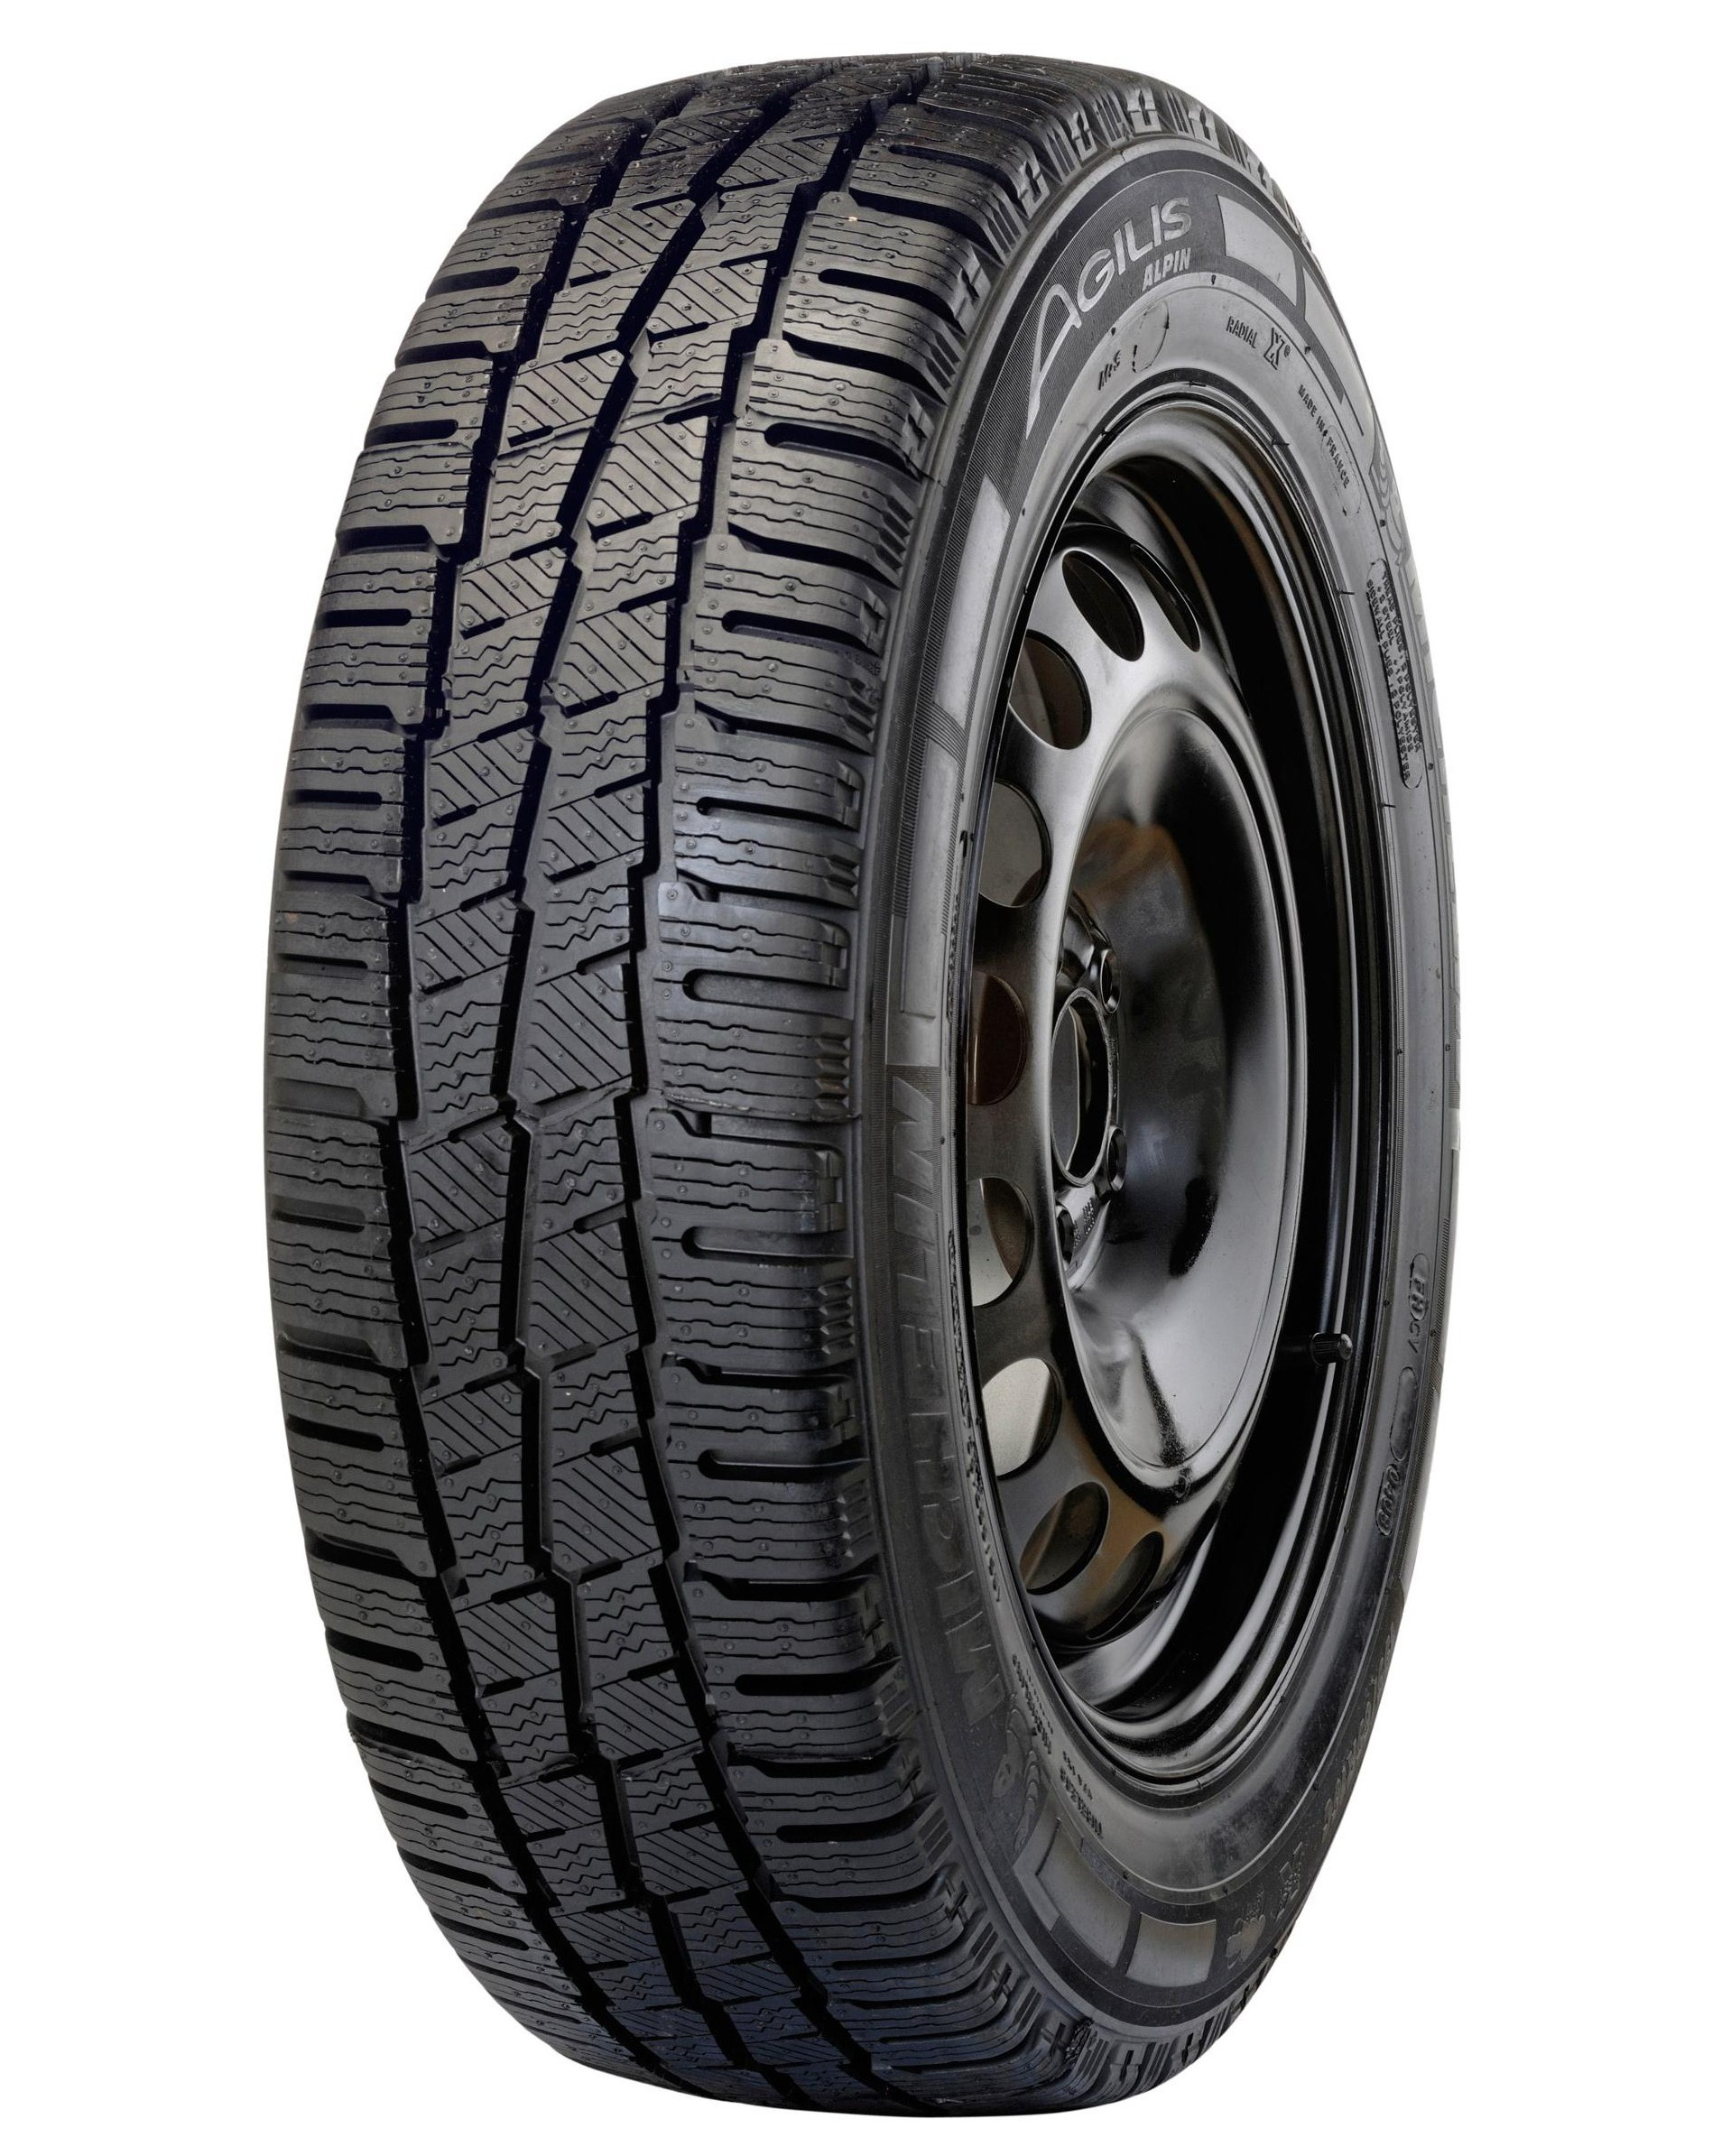 205/65 R16C [107/105] T AGILIS ALPIN - MICHELIN